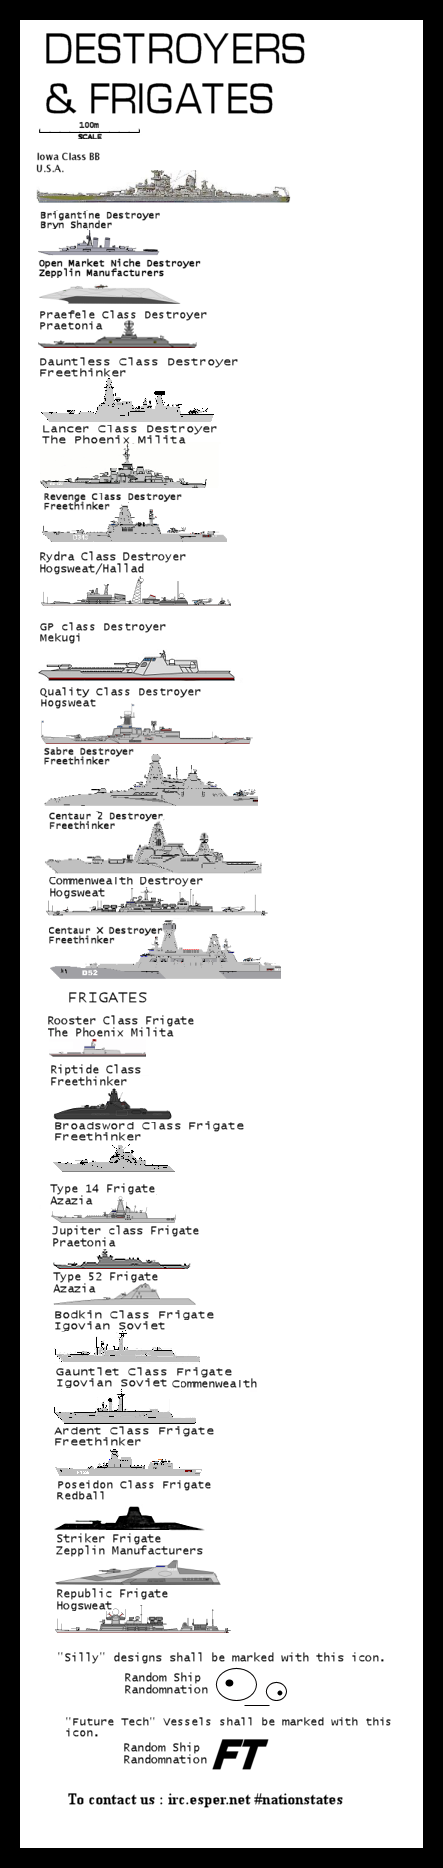 Destroyers_and_frigates_V25_by_Doc_Evilonavich.png